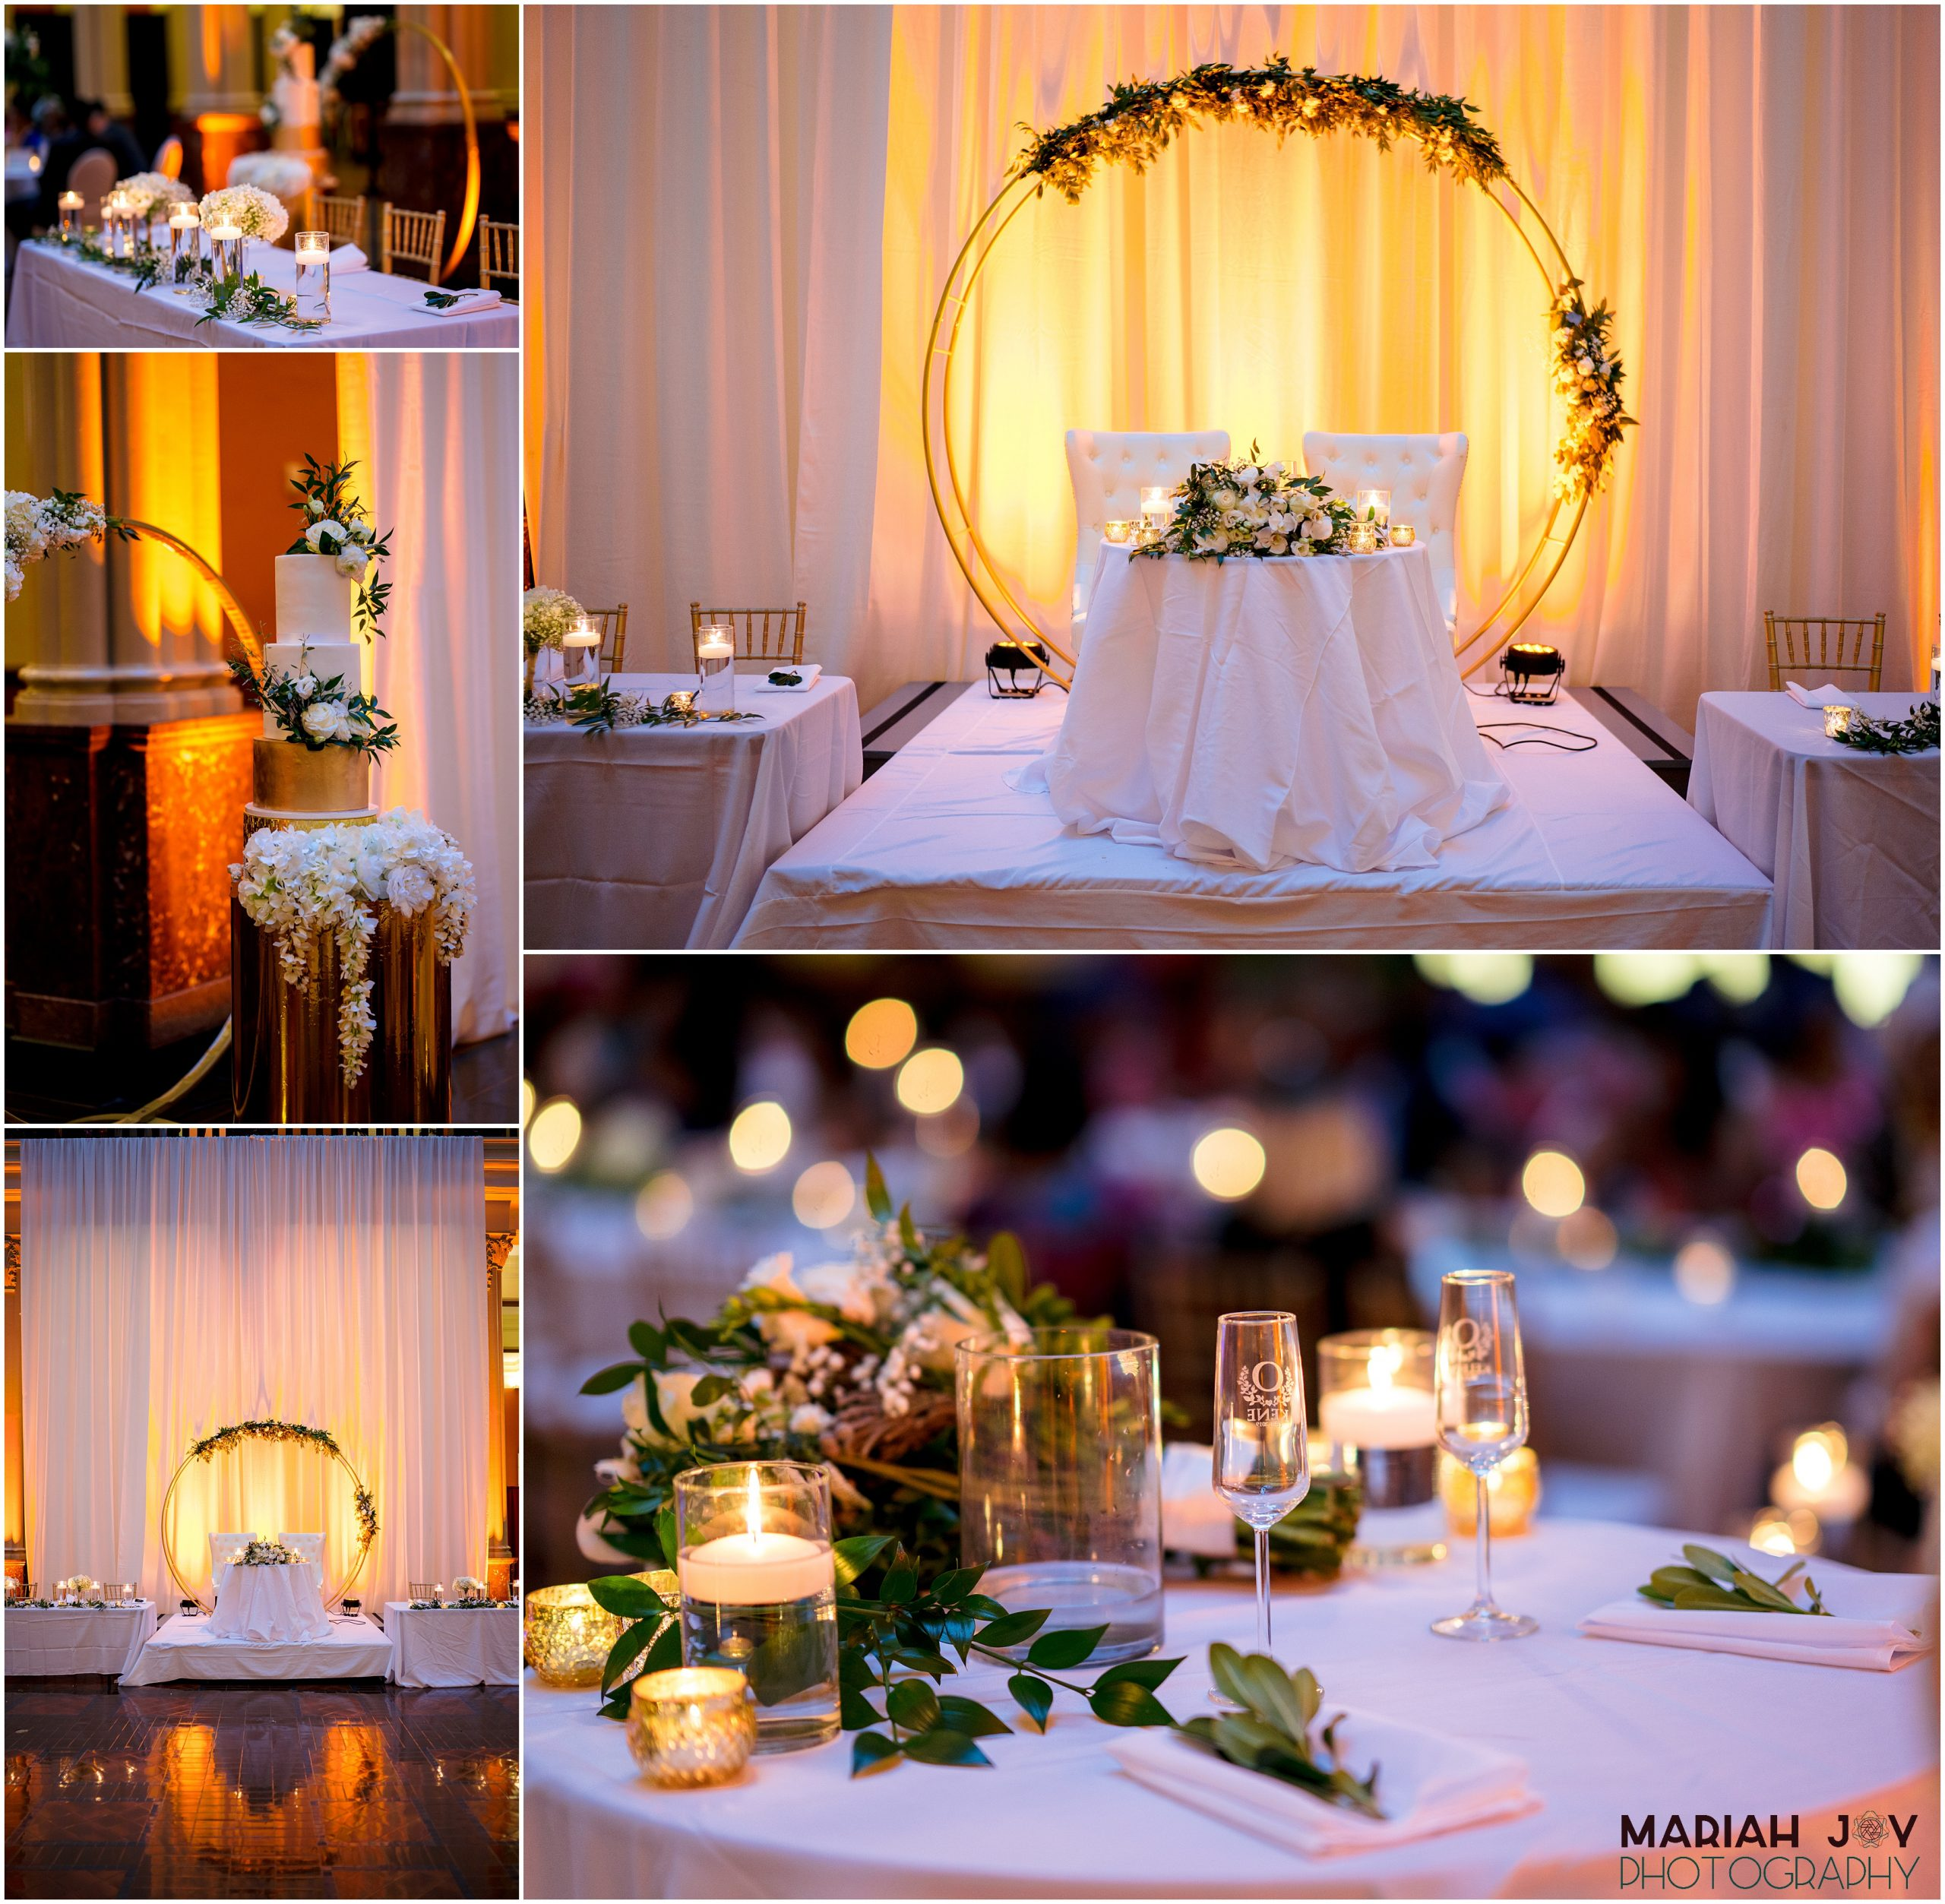 LandmarkCenterWeddingReception-2.jpg